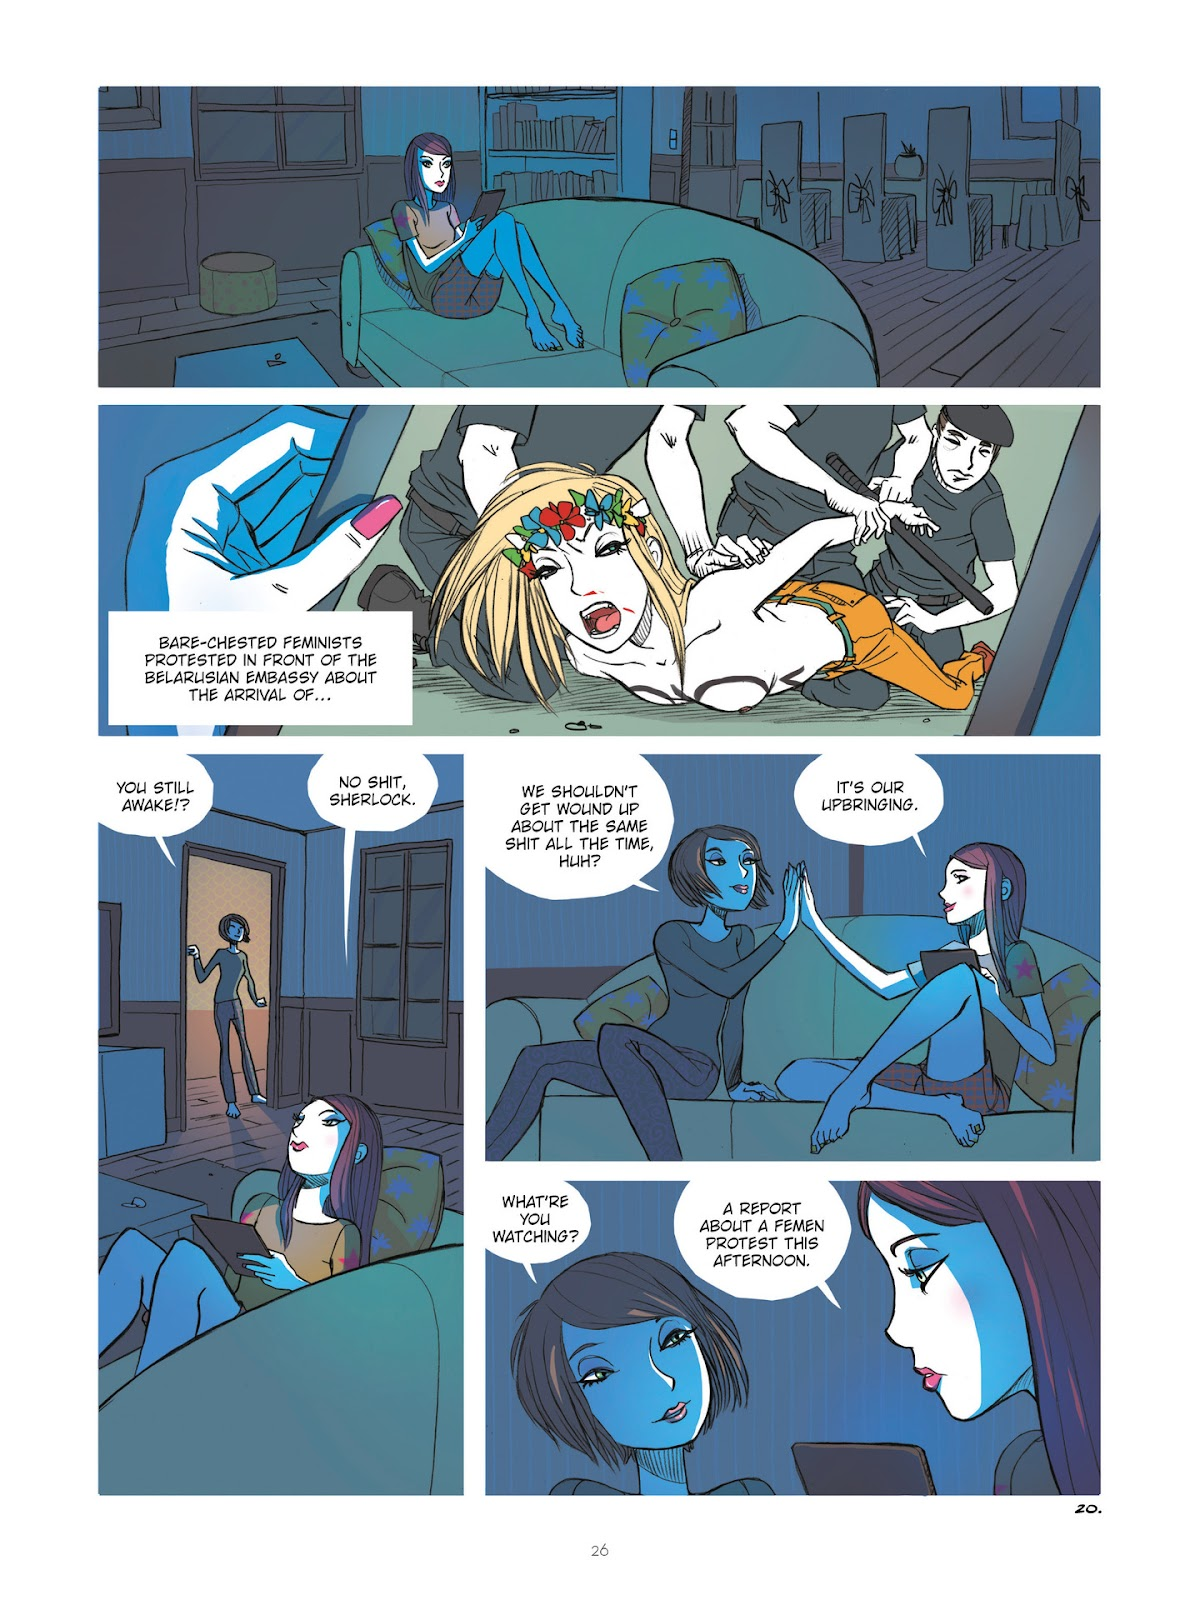 Read online Diary of A Femen comic -  Issue # TPB - 28